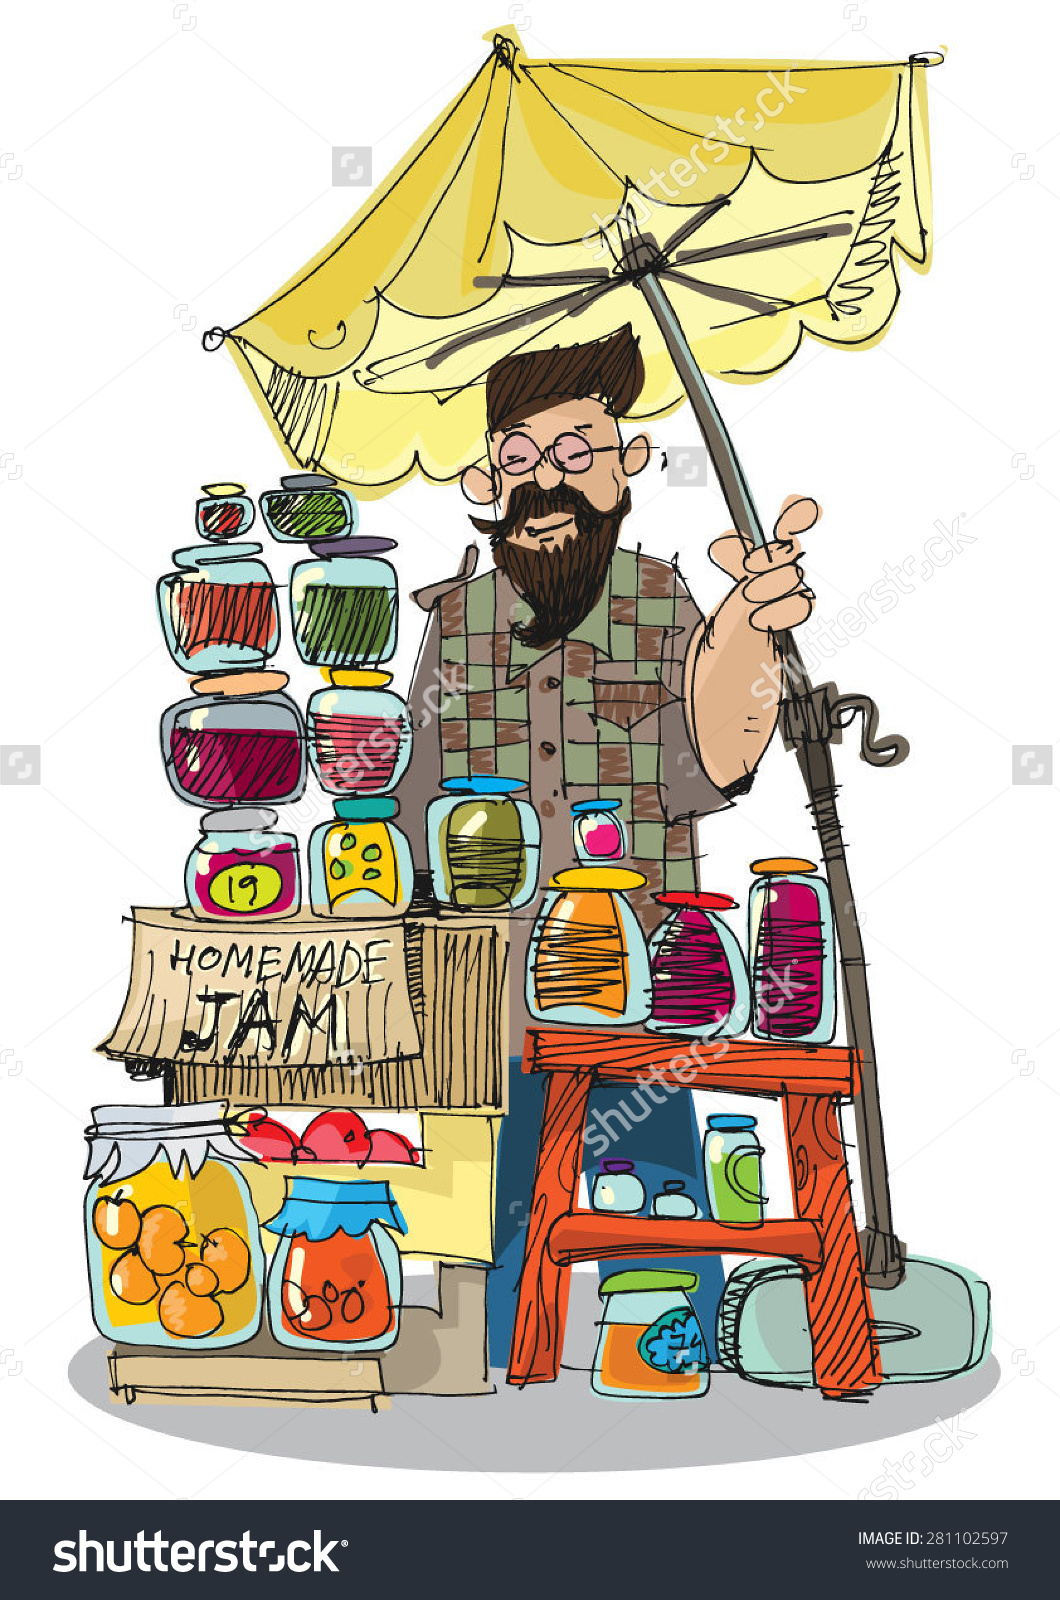 Market clipart street market Market street Clipart market The